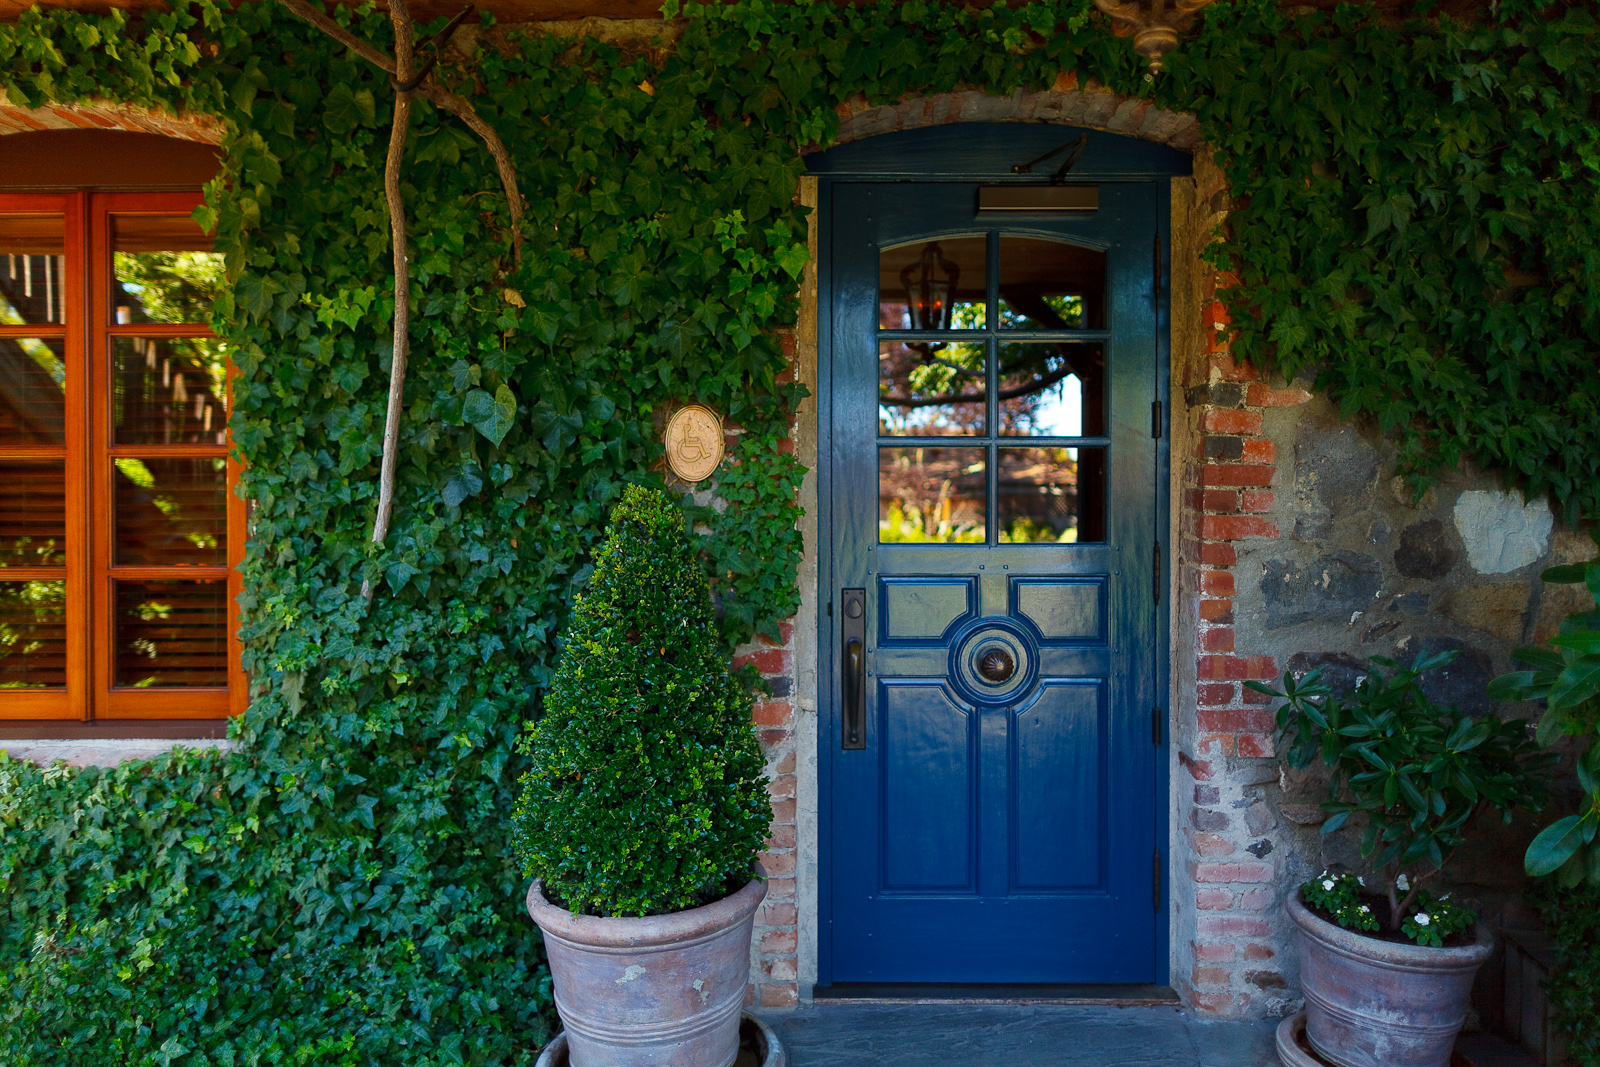 Entrance to the French Laundry